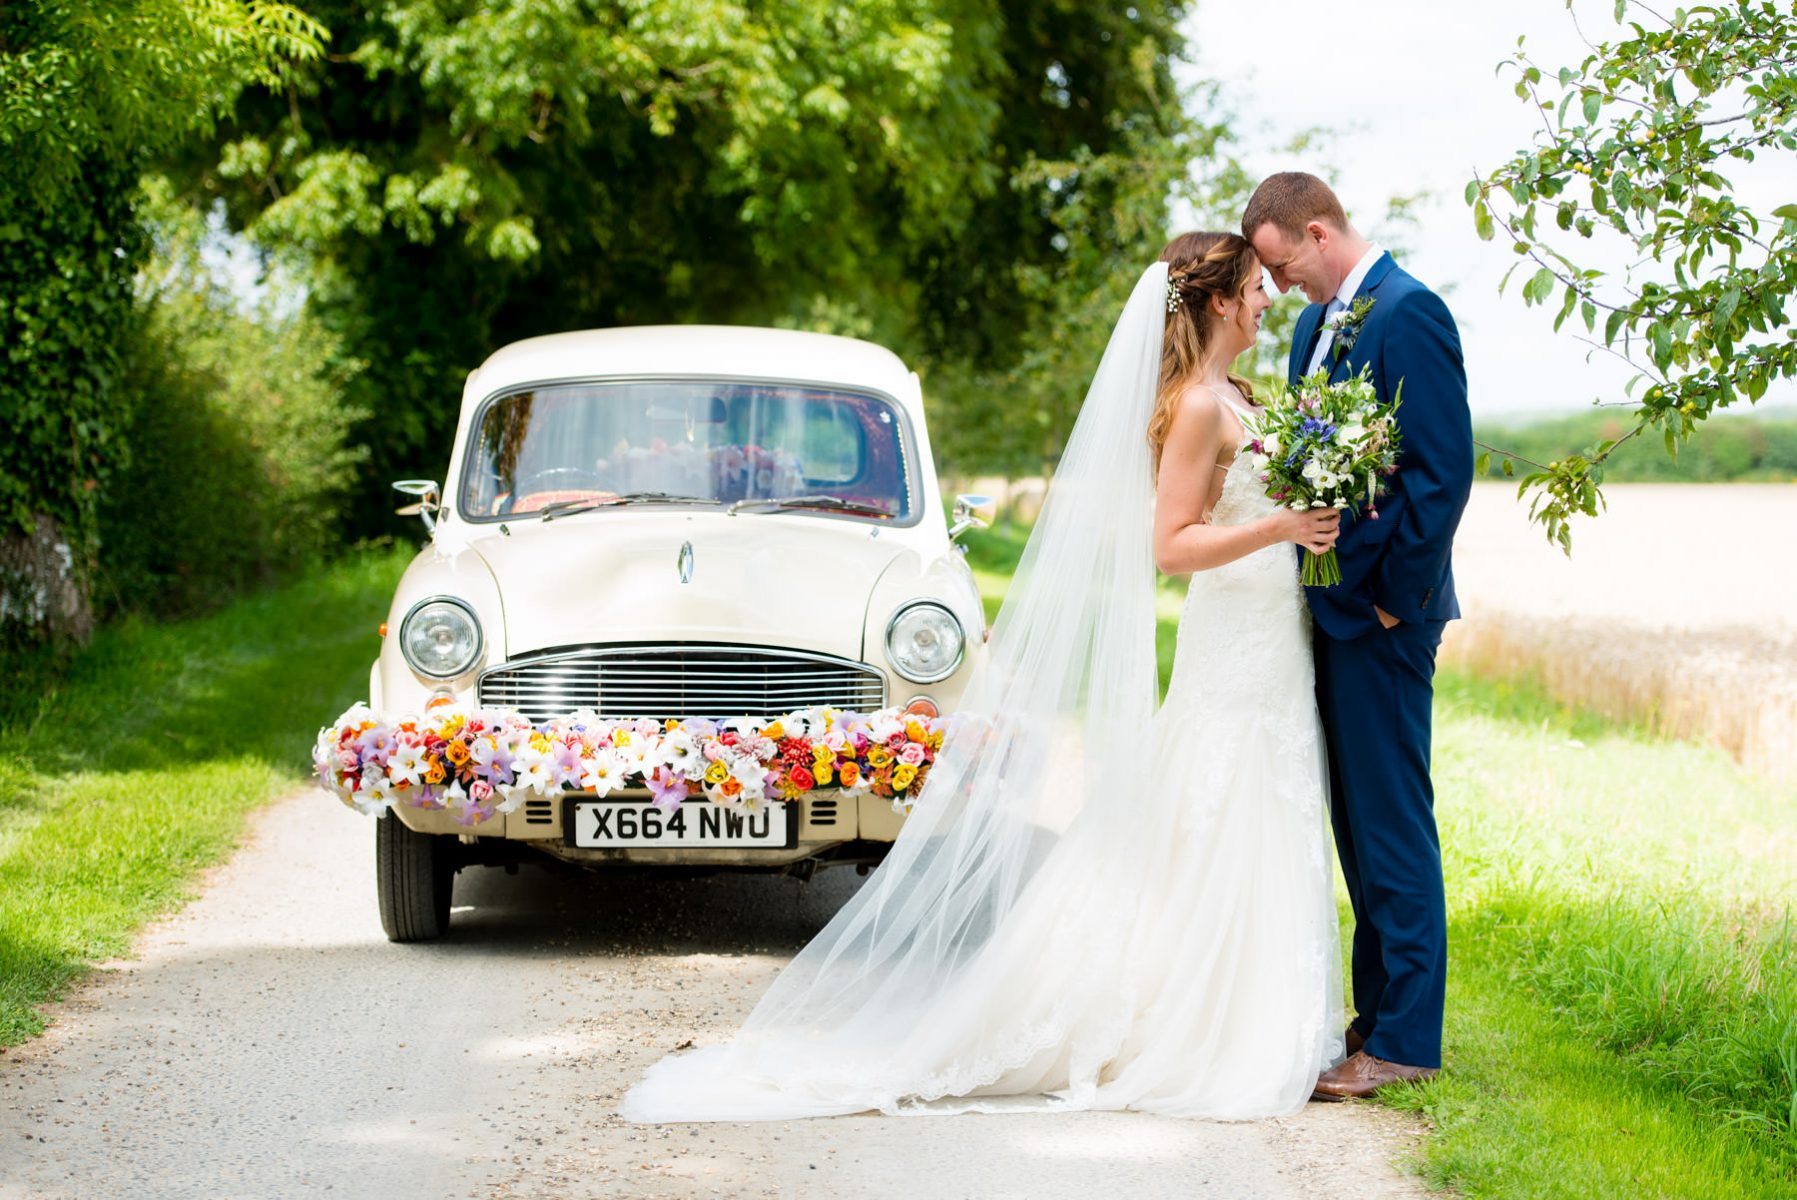 Bride and groom kissing next to wedding car